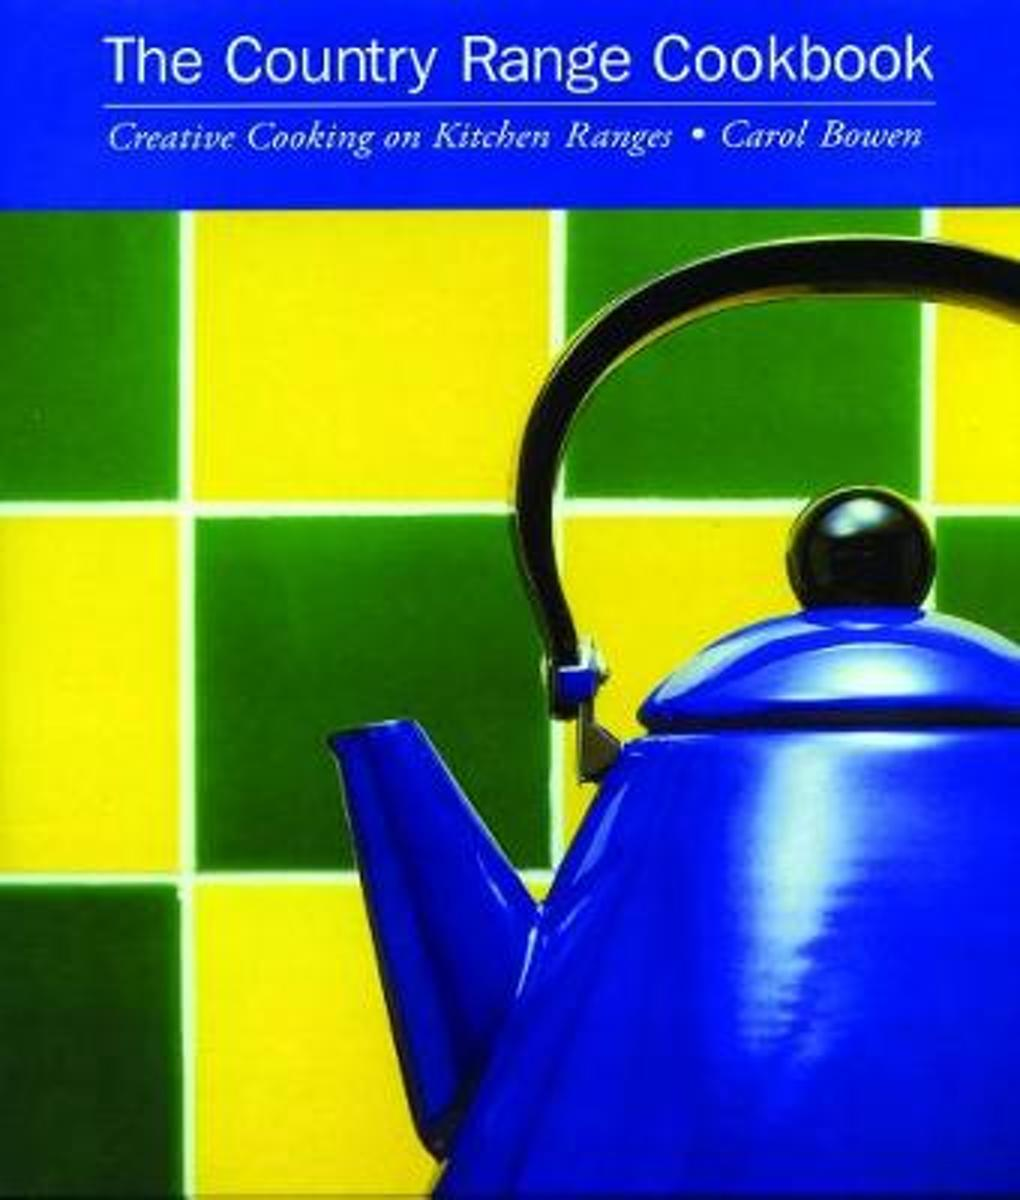 The Country Range Cookbook